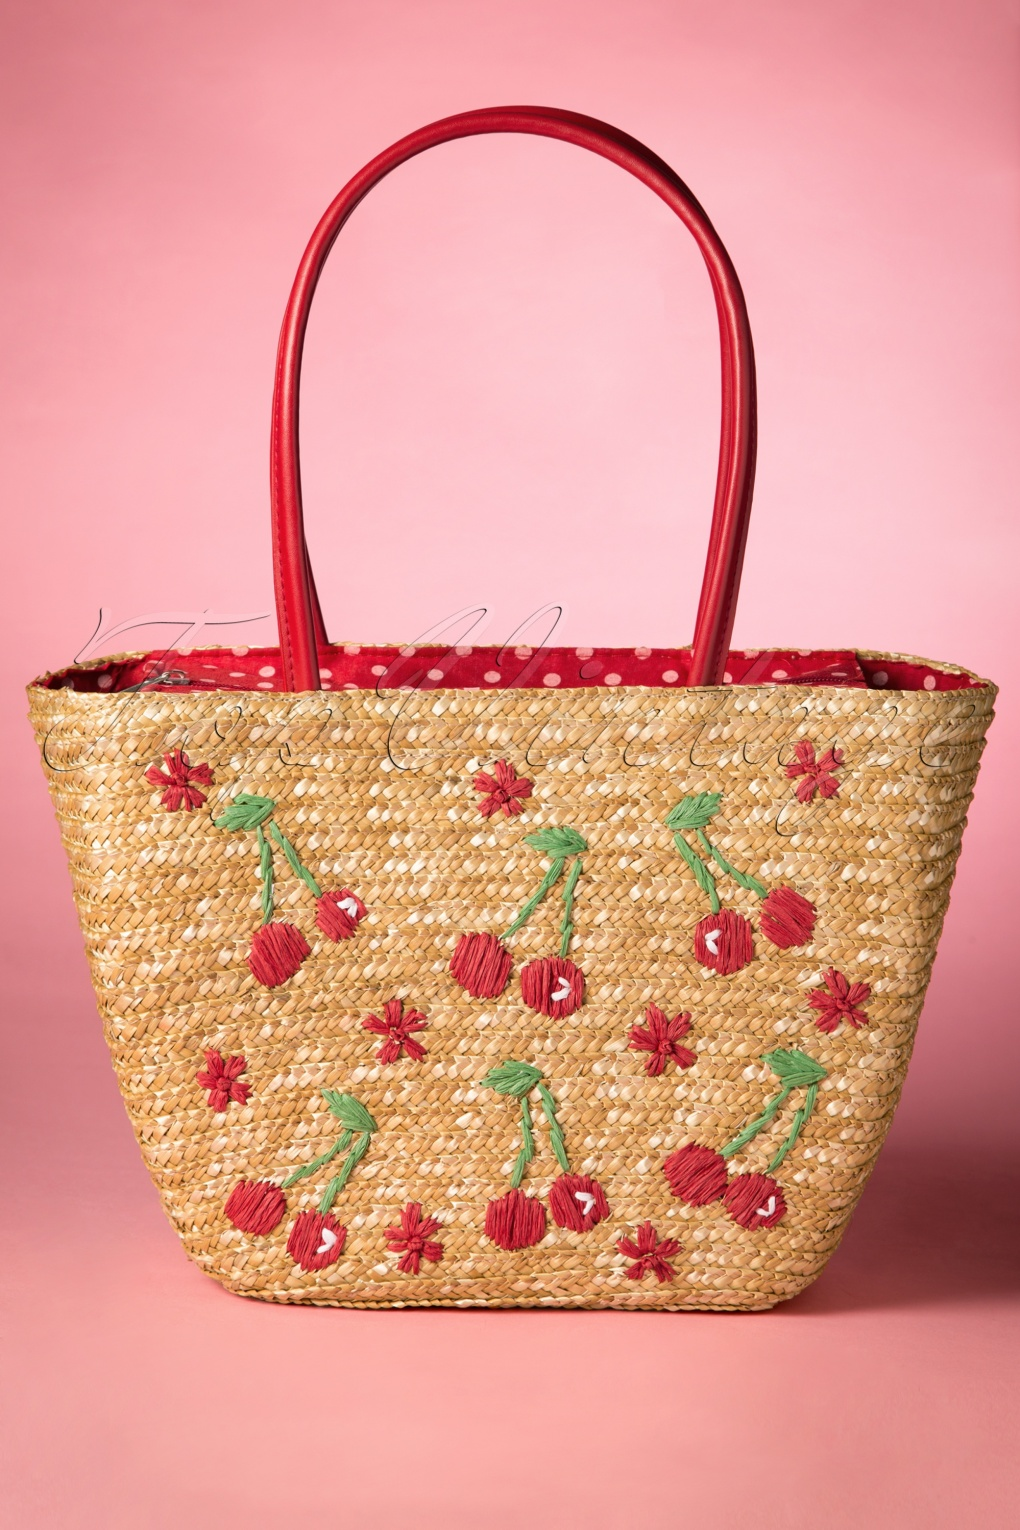 Retro Handbags, Purses, Wallets, Bags 50s Cherry Straw Picnic Bag £25.57 AT vintagedancer.com